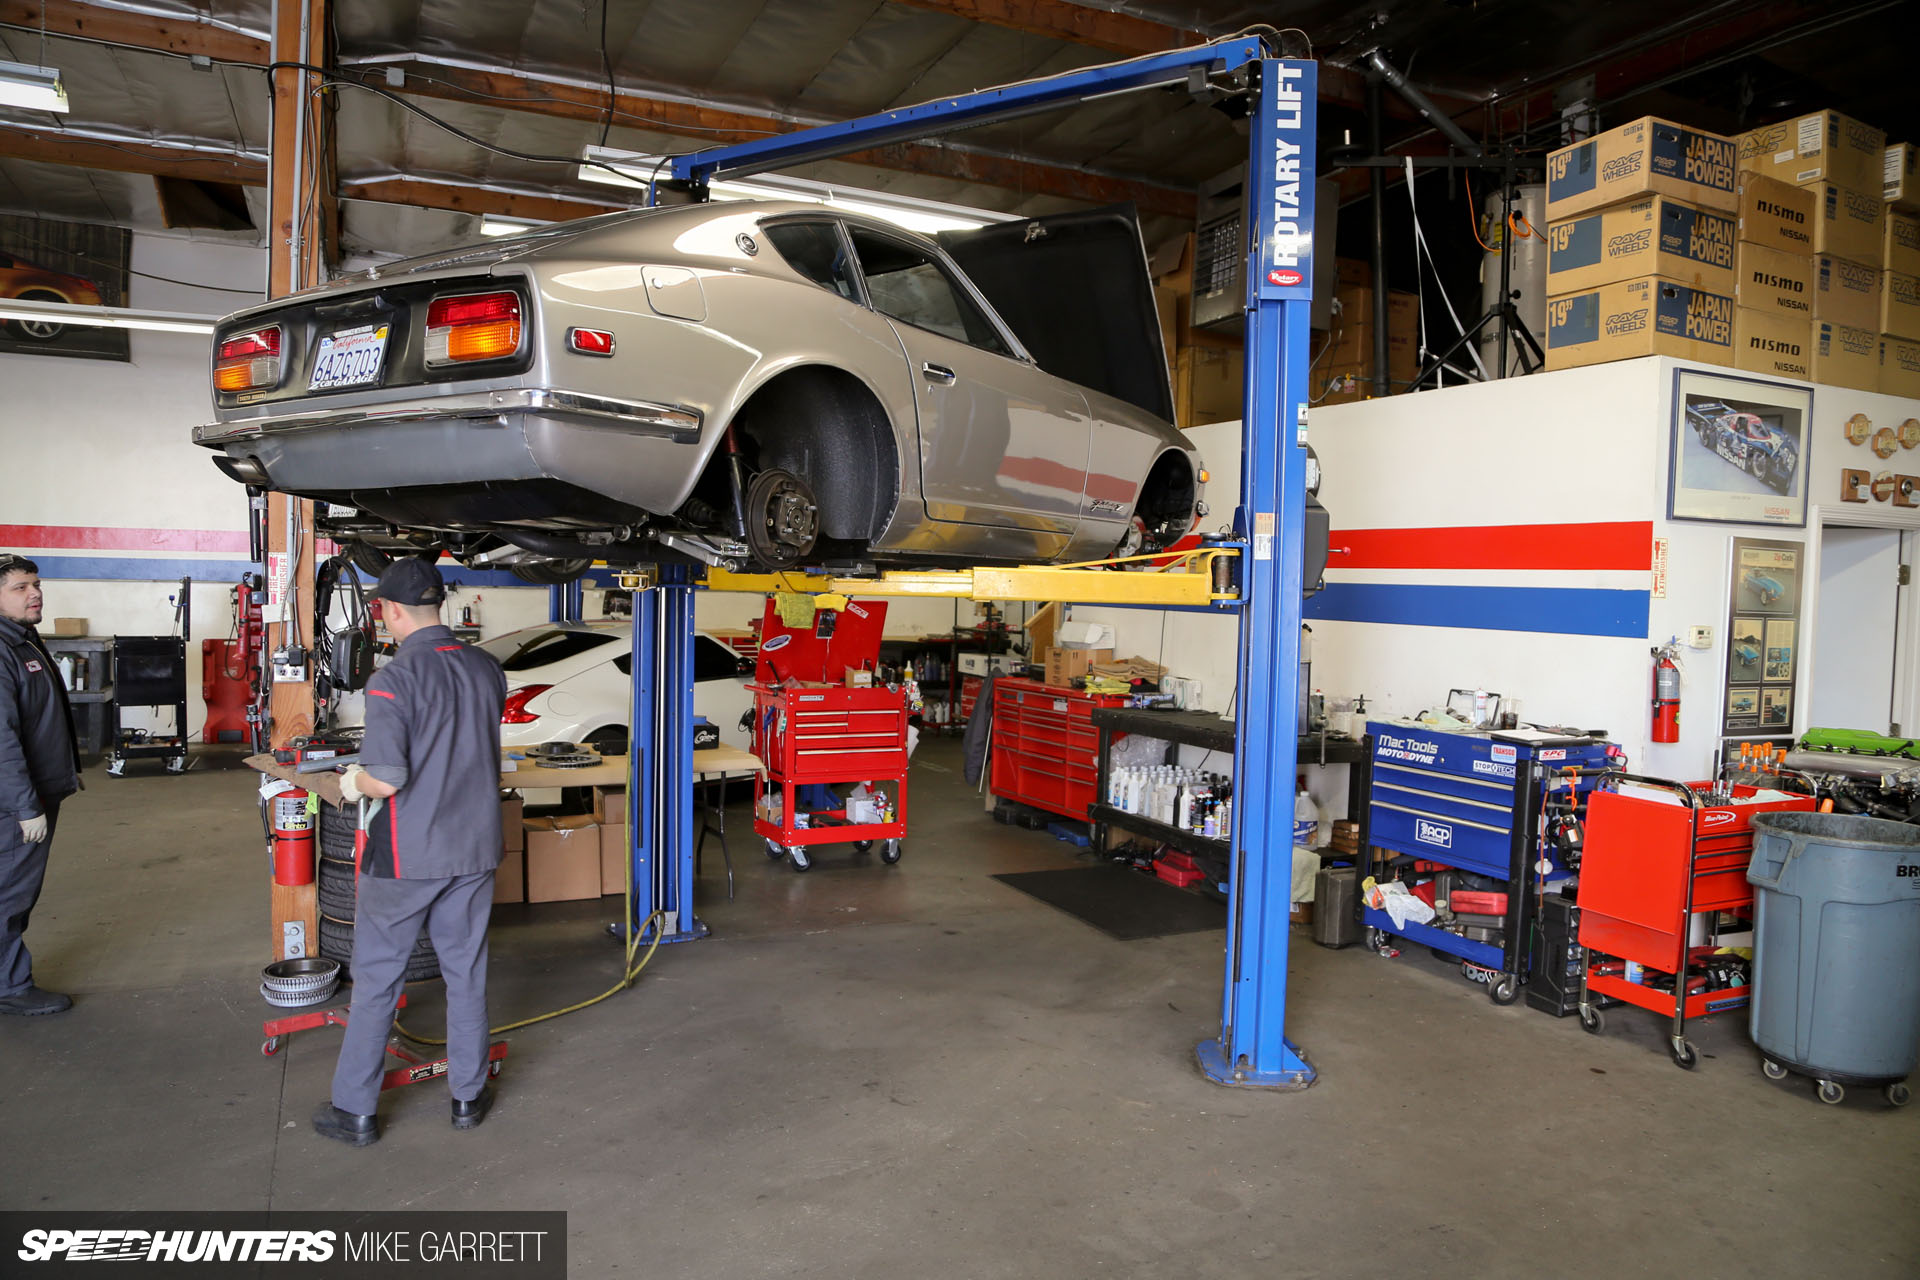 Z Car Garage: Where Datsun Geeks Rule